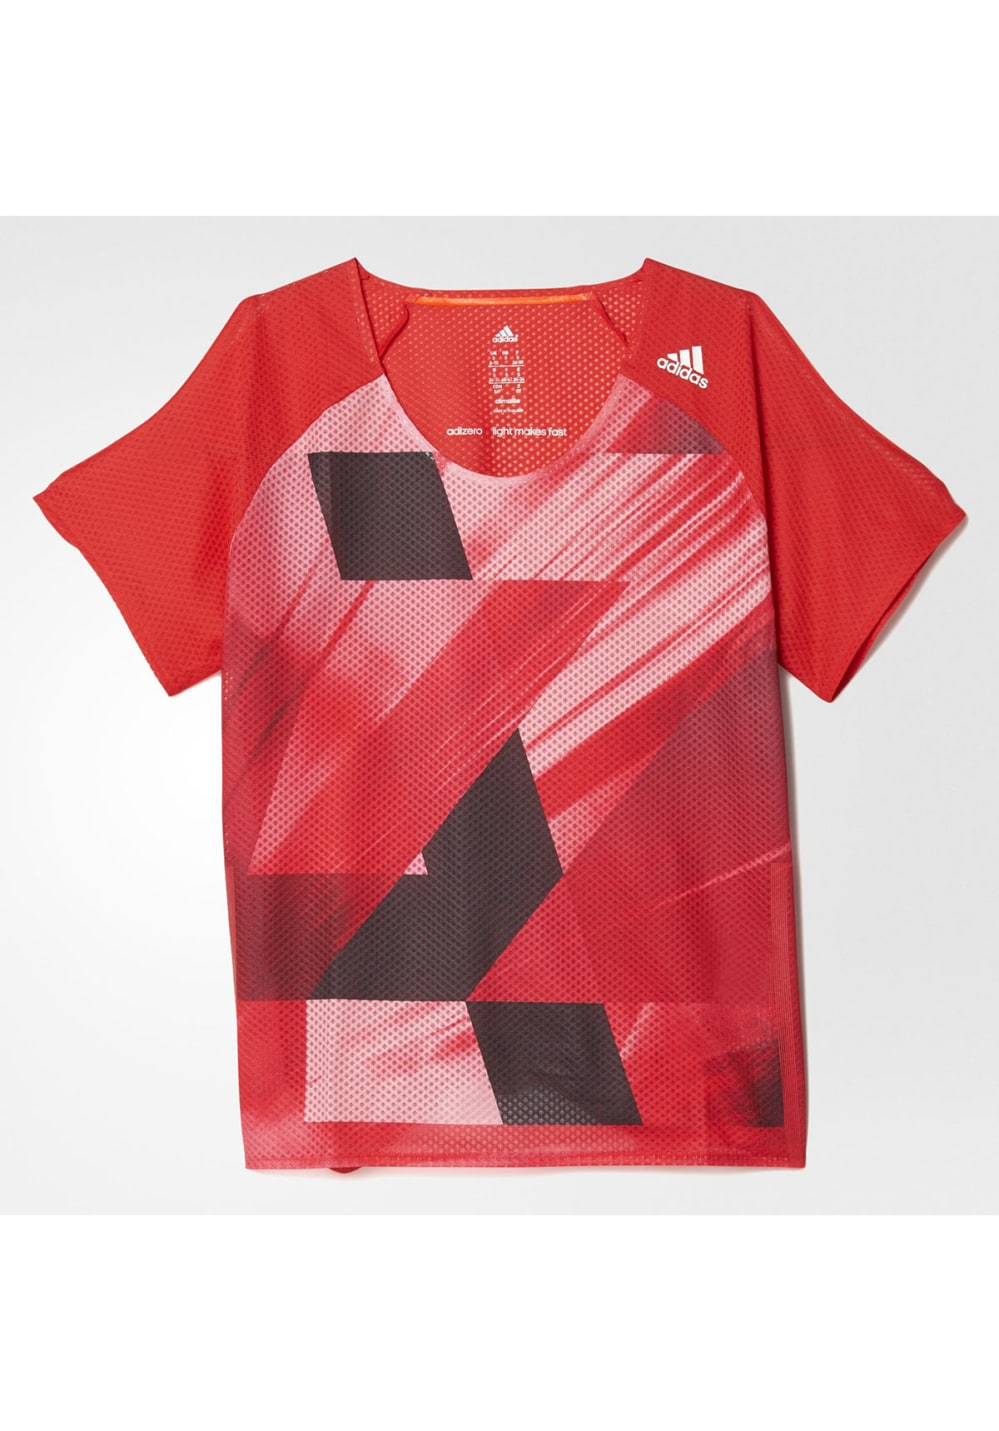 af419a53517e3 adidas adizero Short Sleeve - Running tops for Women - Red